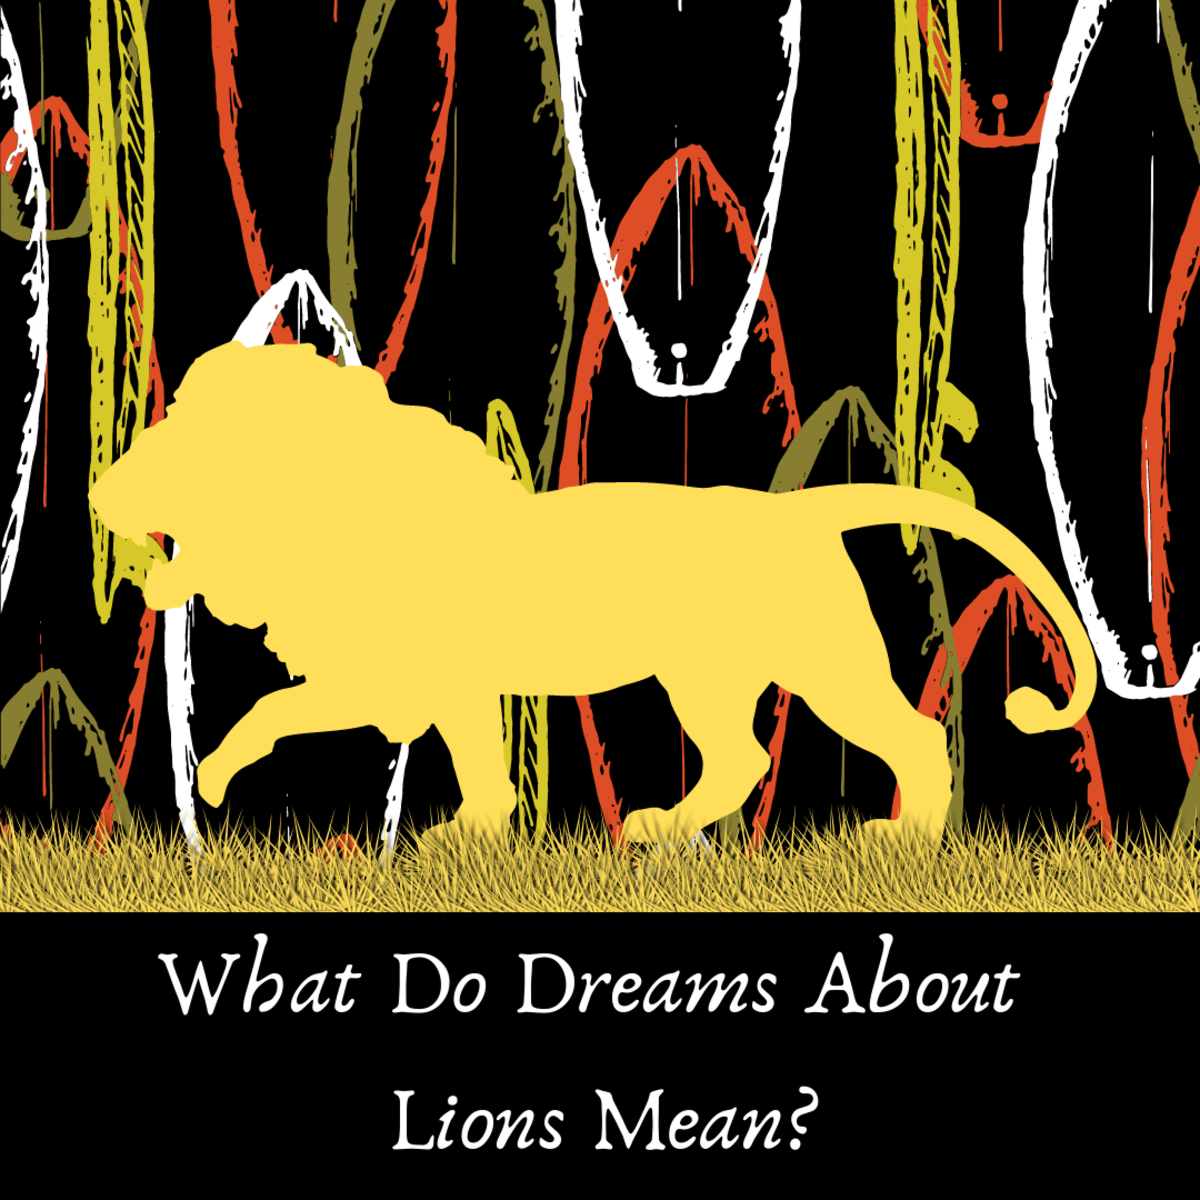 What Do Dreams About Lions Mean?